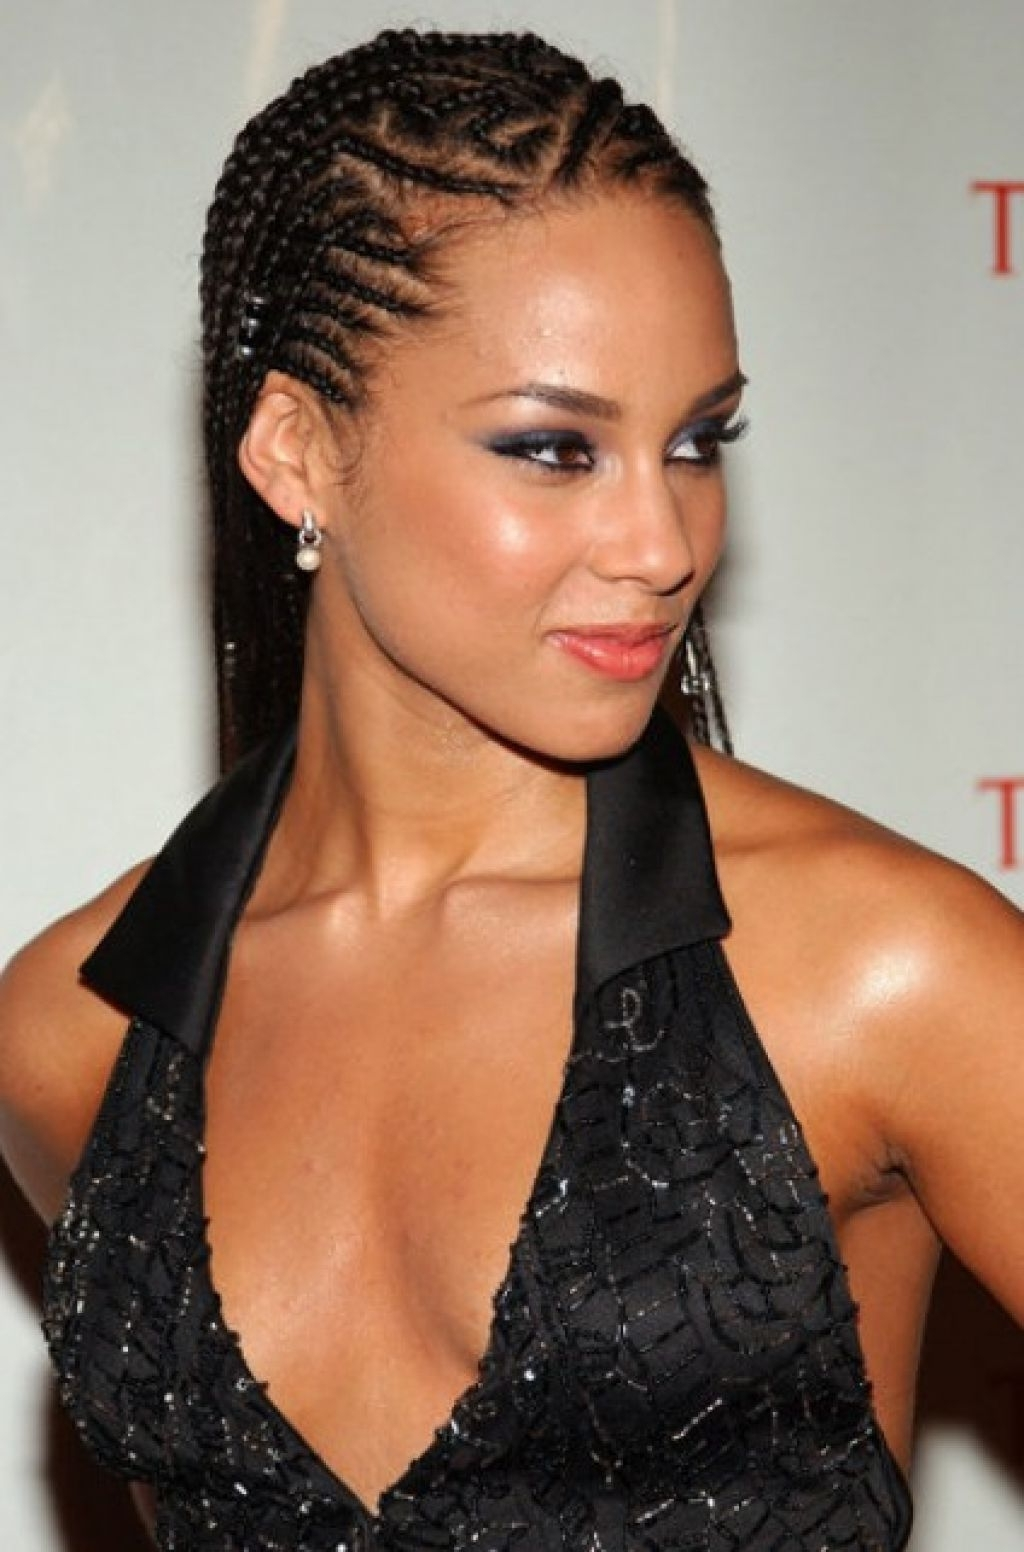 Prom Hairstyles For Long Hair Messy Braid Updo For Long Hair Prom With Famous Cornrows Prom Hairstyles (View 4 of 15)